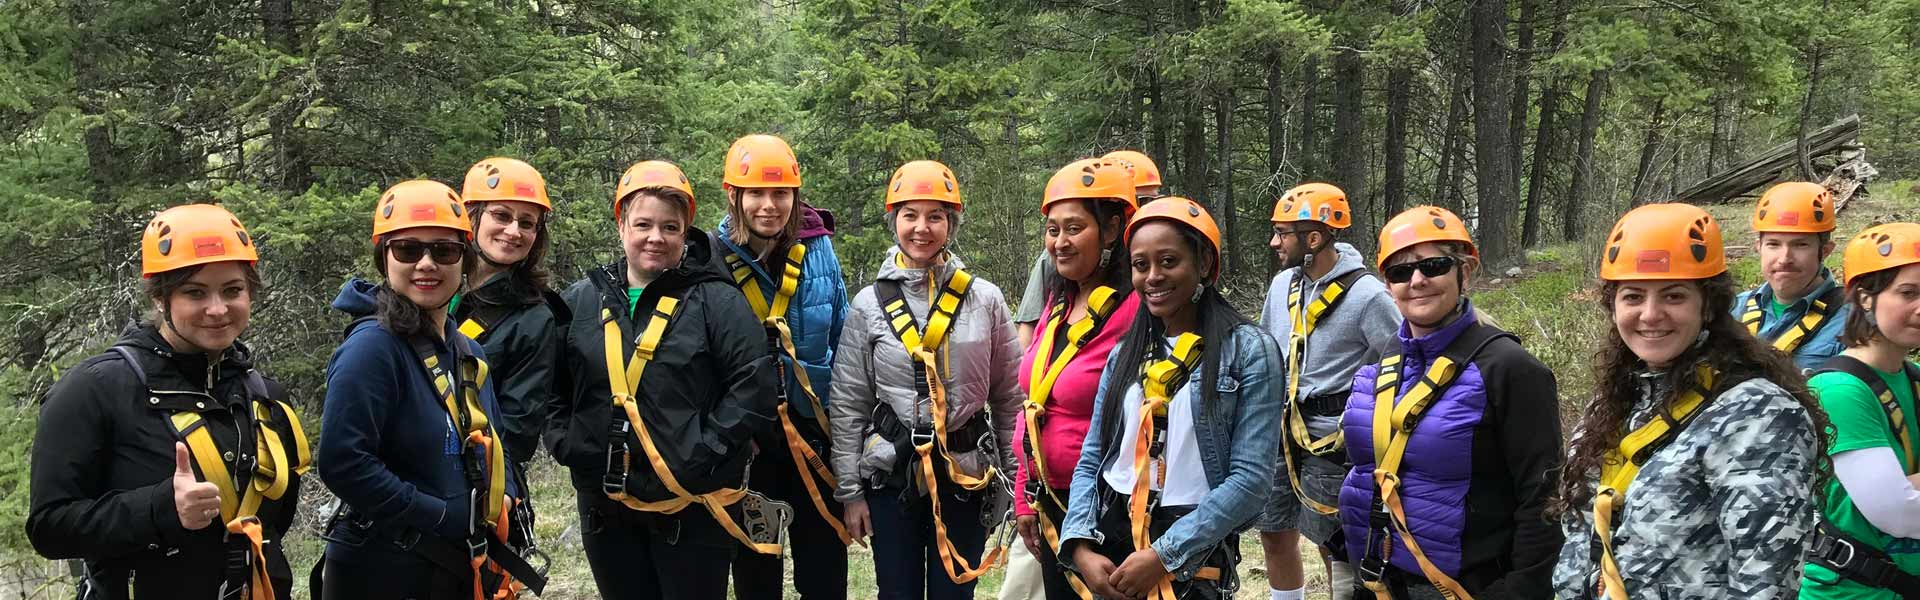 A group of people on a zip line adventure